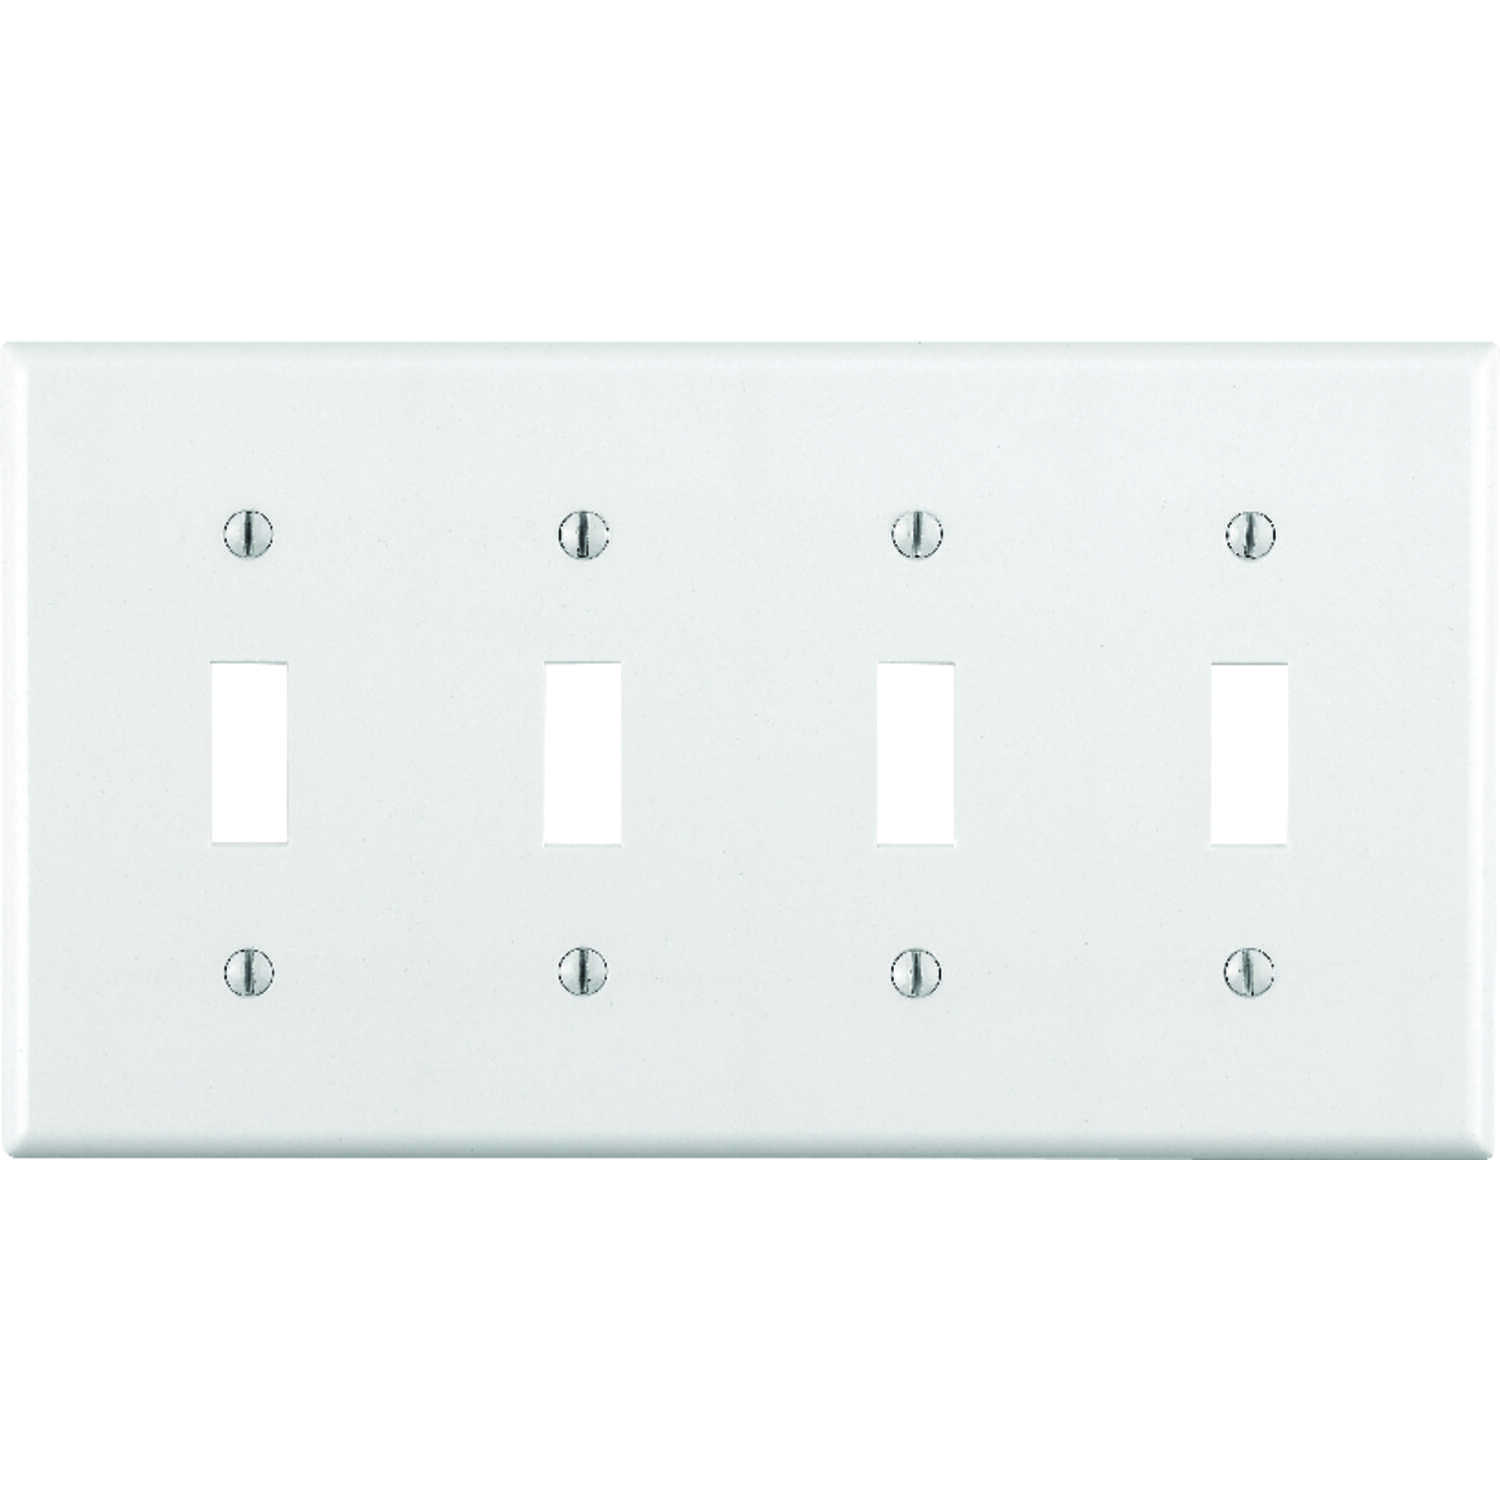 Leviton  White  4 gang Plastic  Toggle  Wall Plate  1 pk